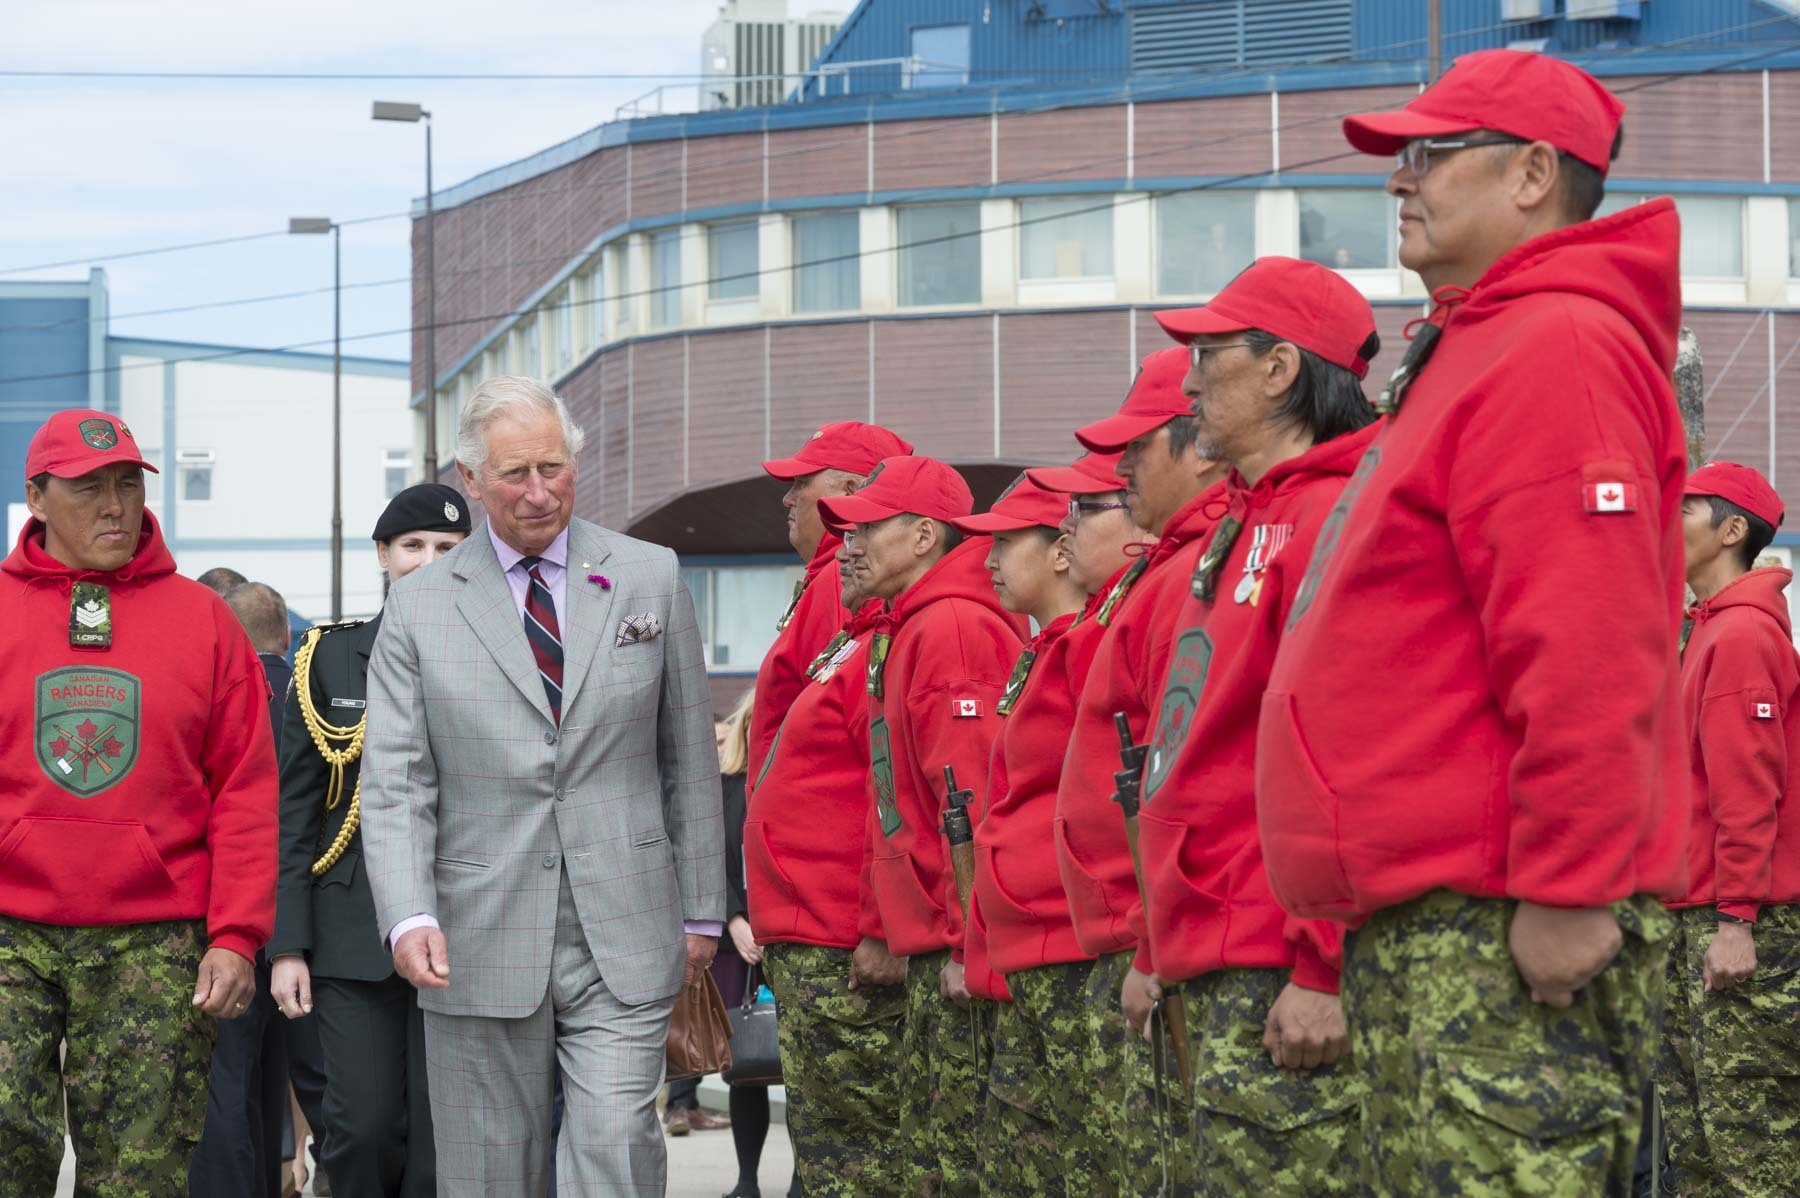 During the ceremony, His Royal Highness The Prince of Wales also received military honours, which included the inspection of the Quarter Guard of the Canadian Rangers.